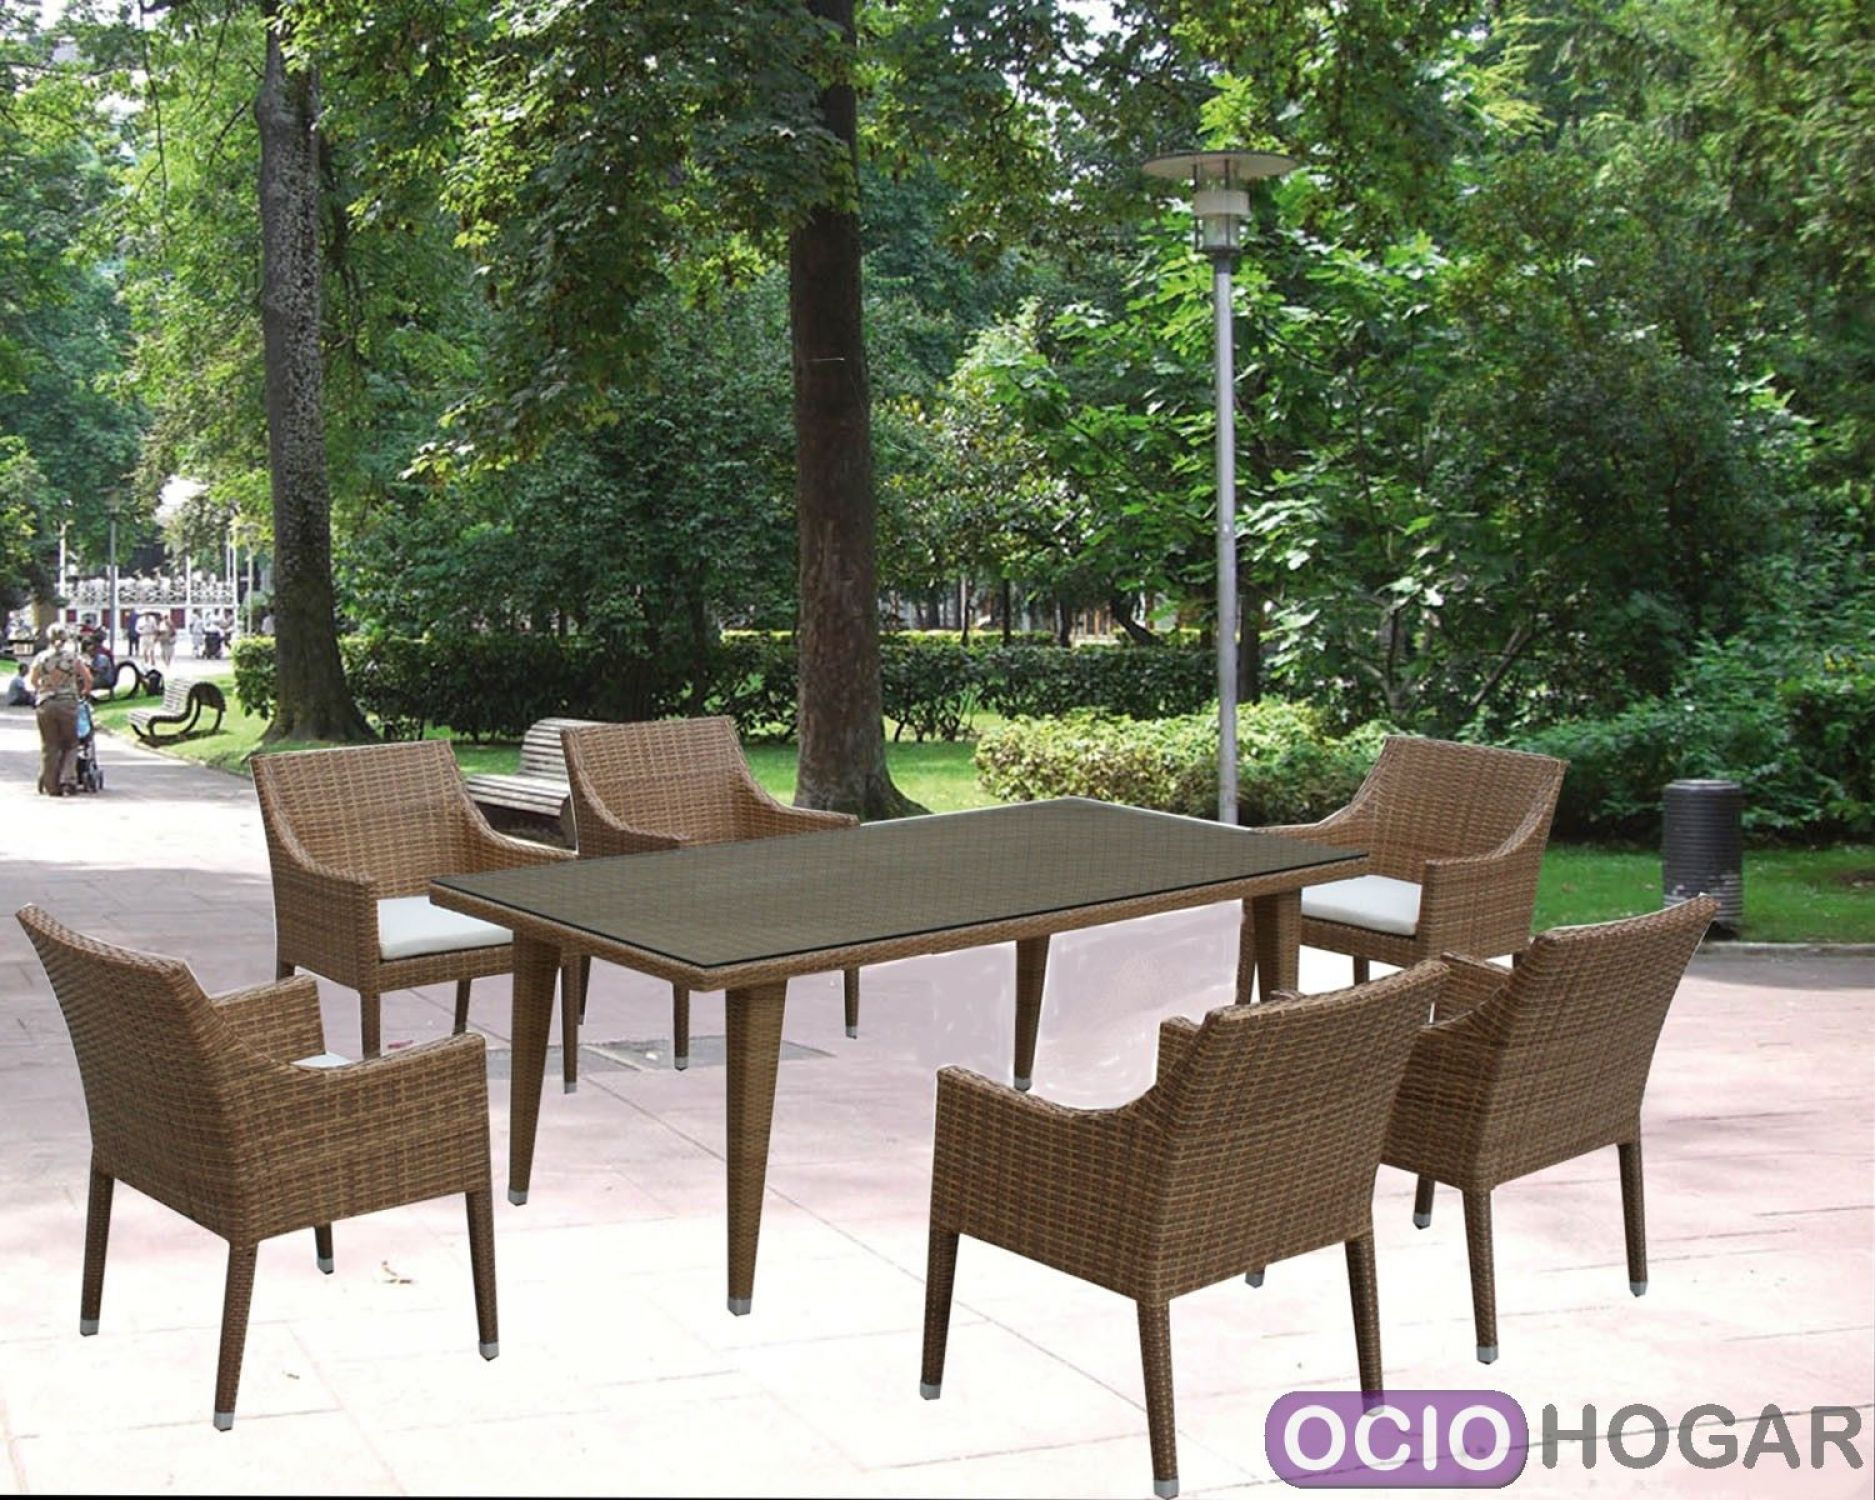 Muebles de jardin madrid awesome muebles jardn villanueva for Sillas milanuncios